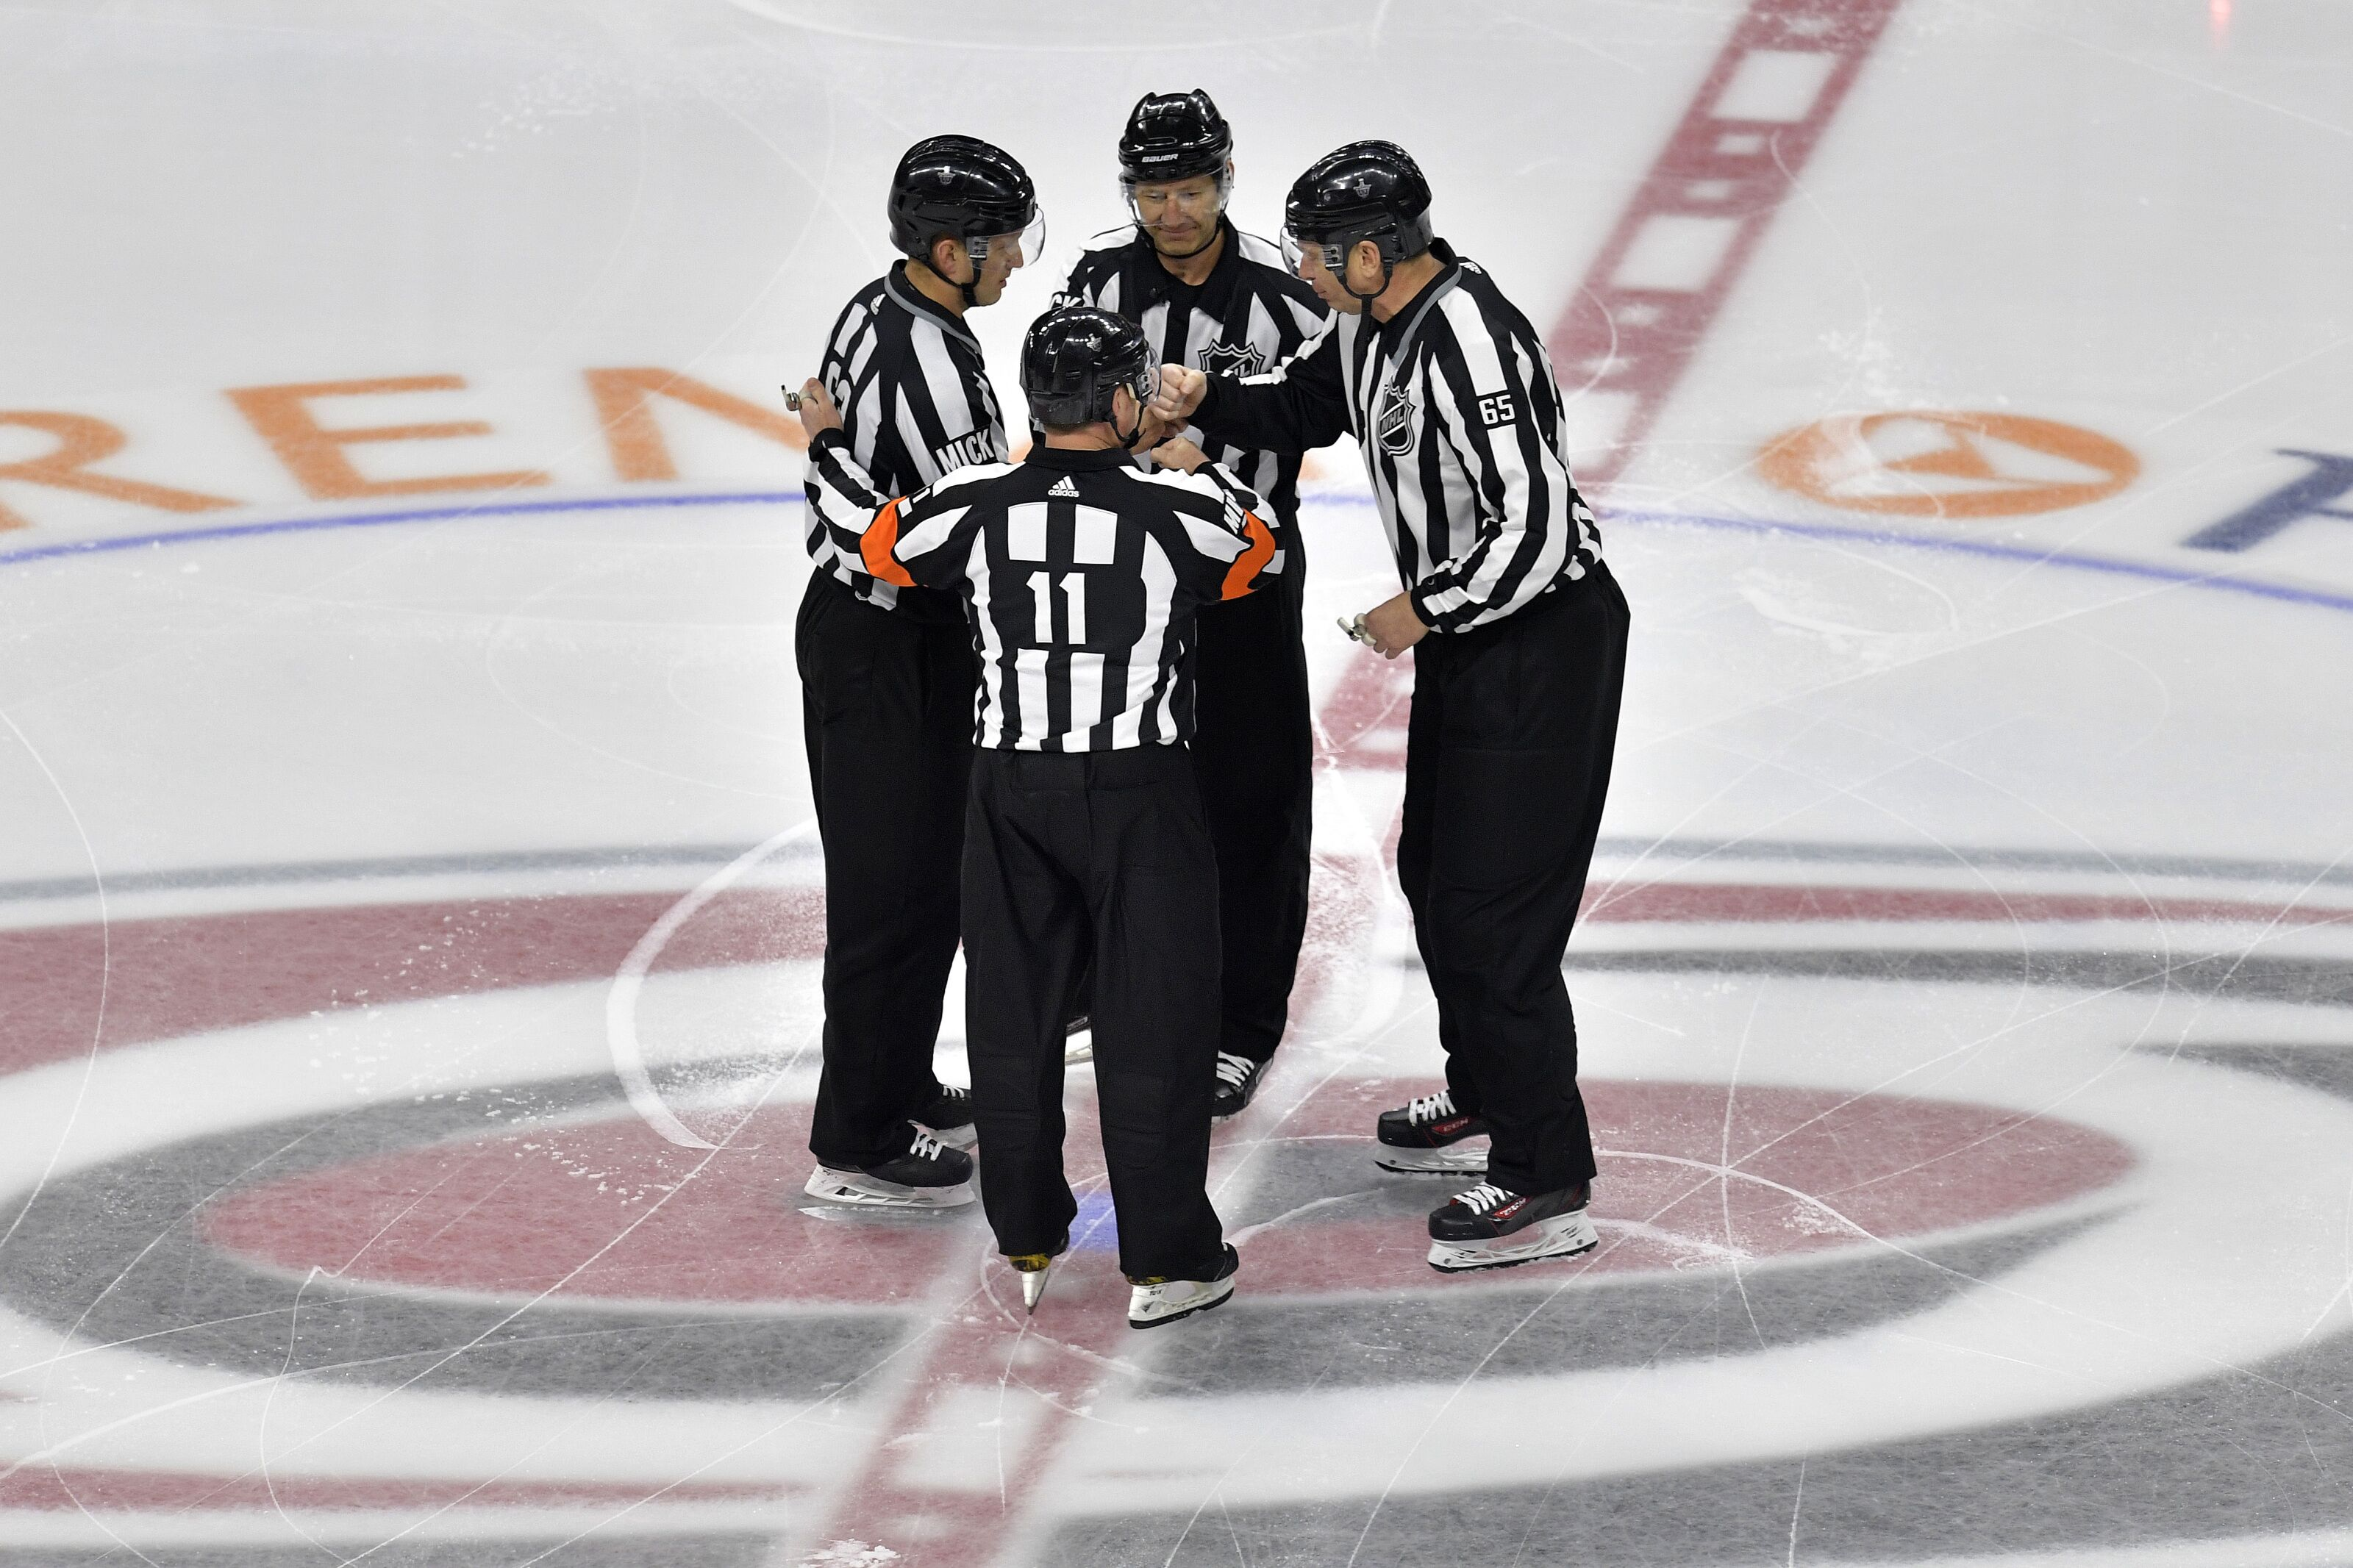 The NHL needs to change their officiating strategy